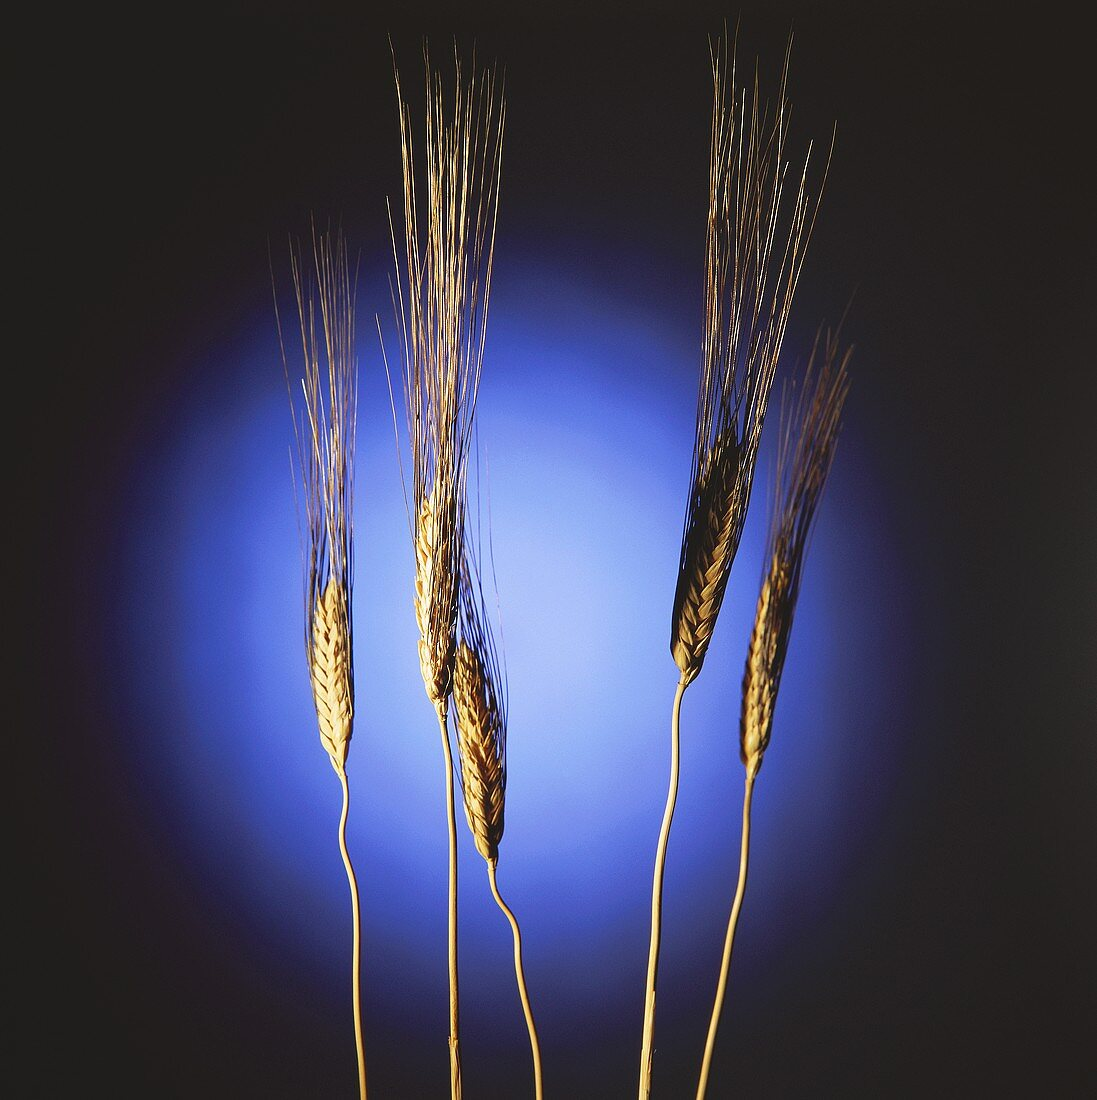 Ears of barley against blue circle of light